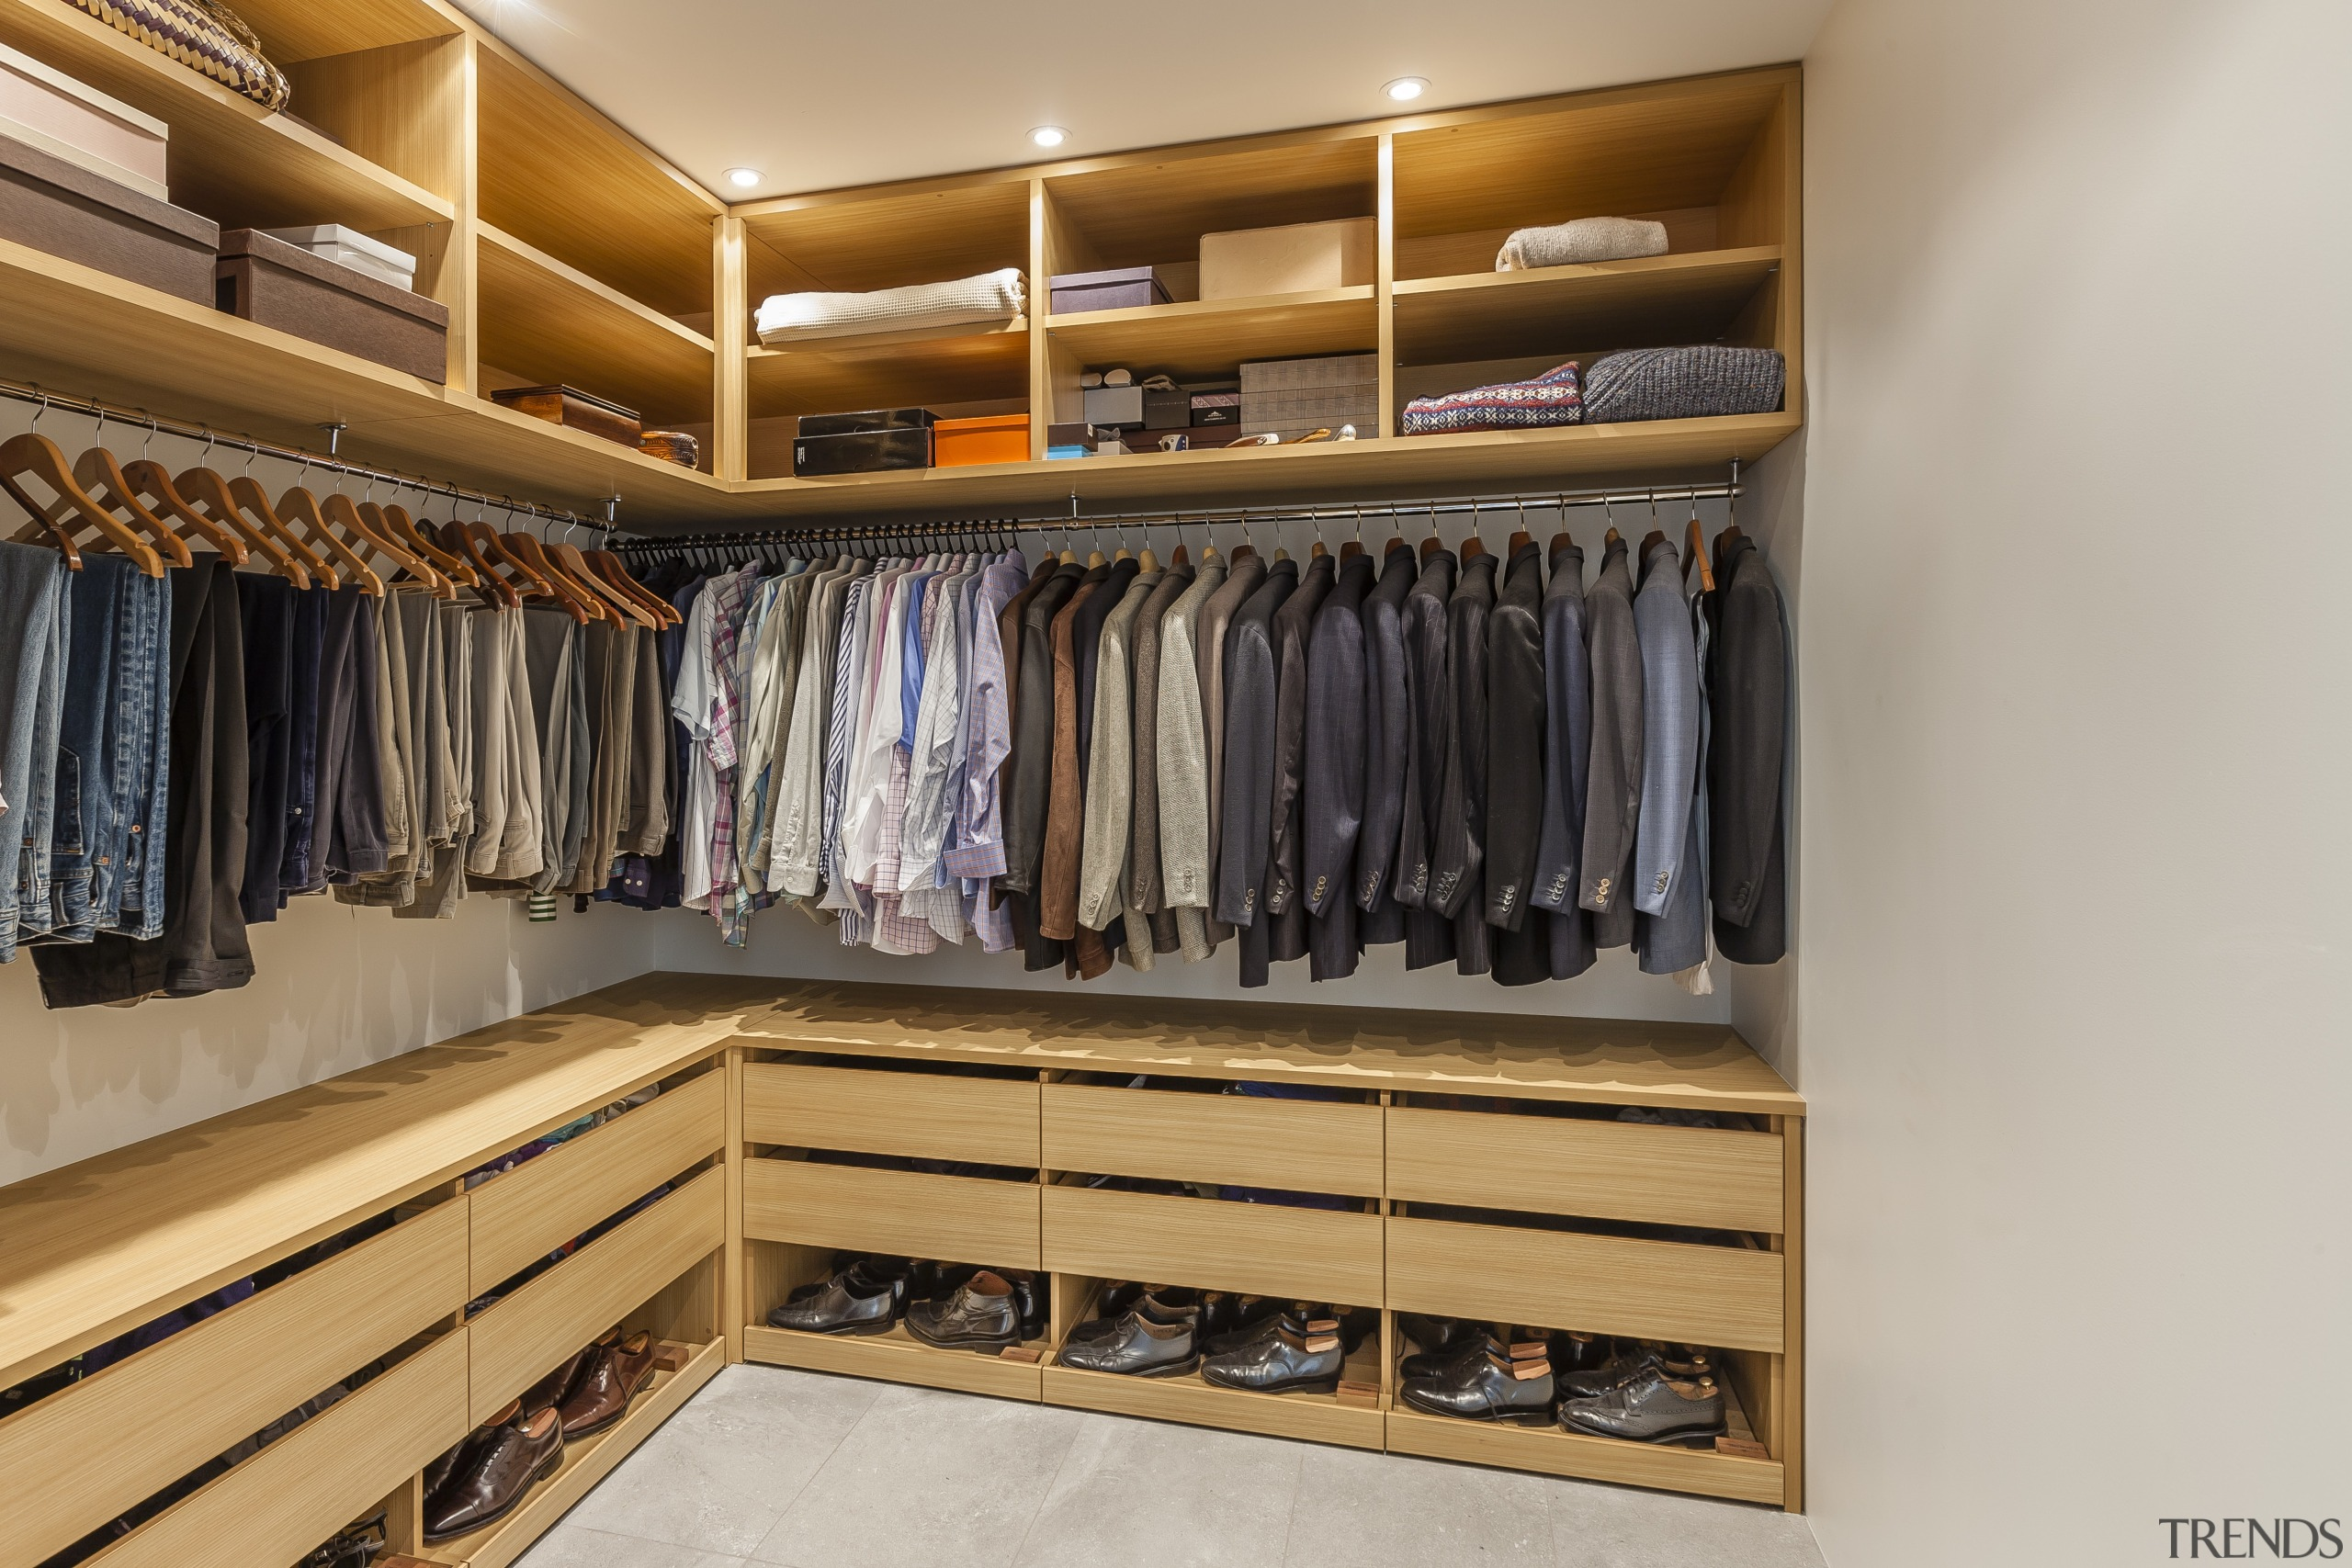 RH Cabinetmakers handcrafts a variety of joinery solutions, boutique, closet, furniture, room, wardrobe, gray